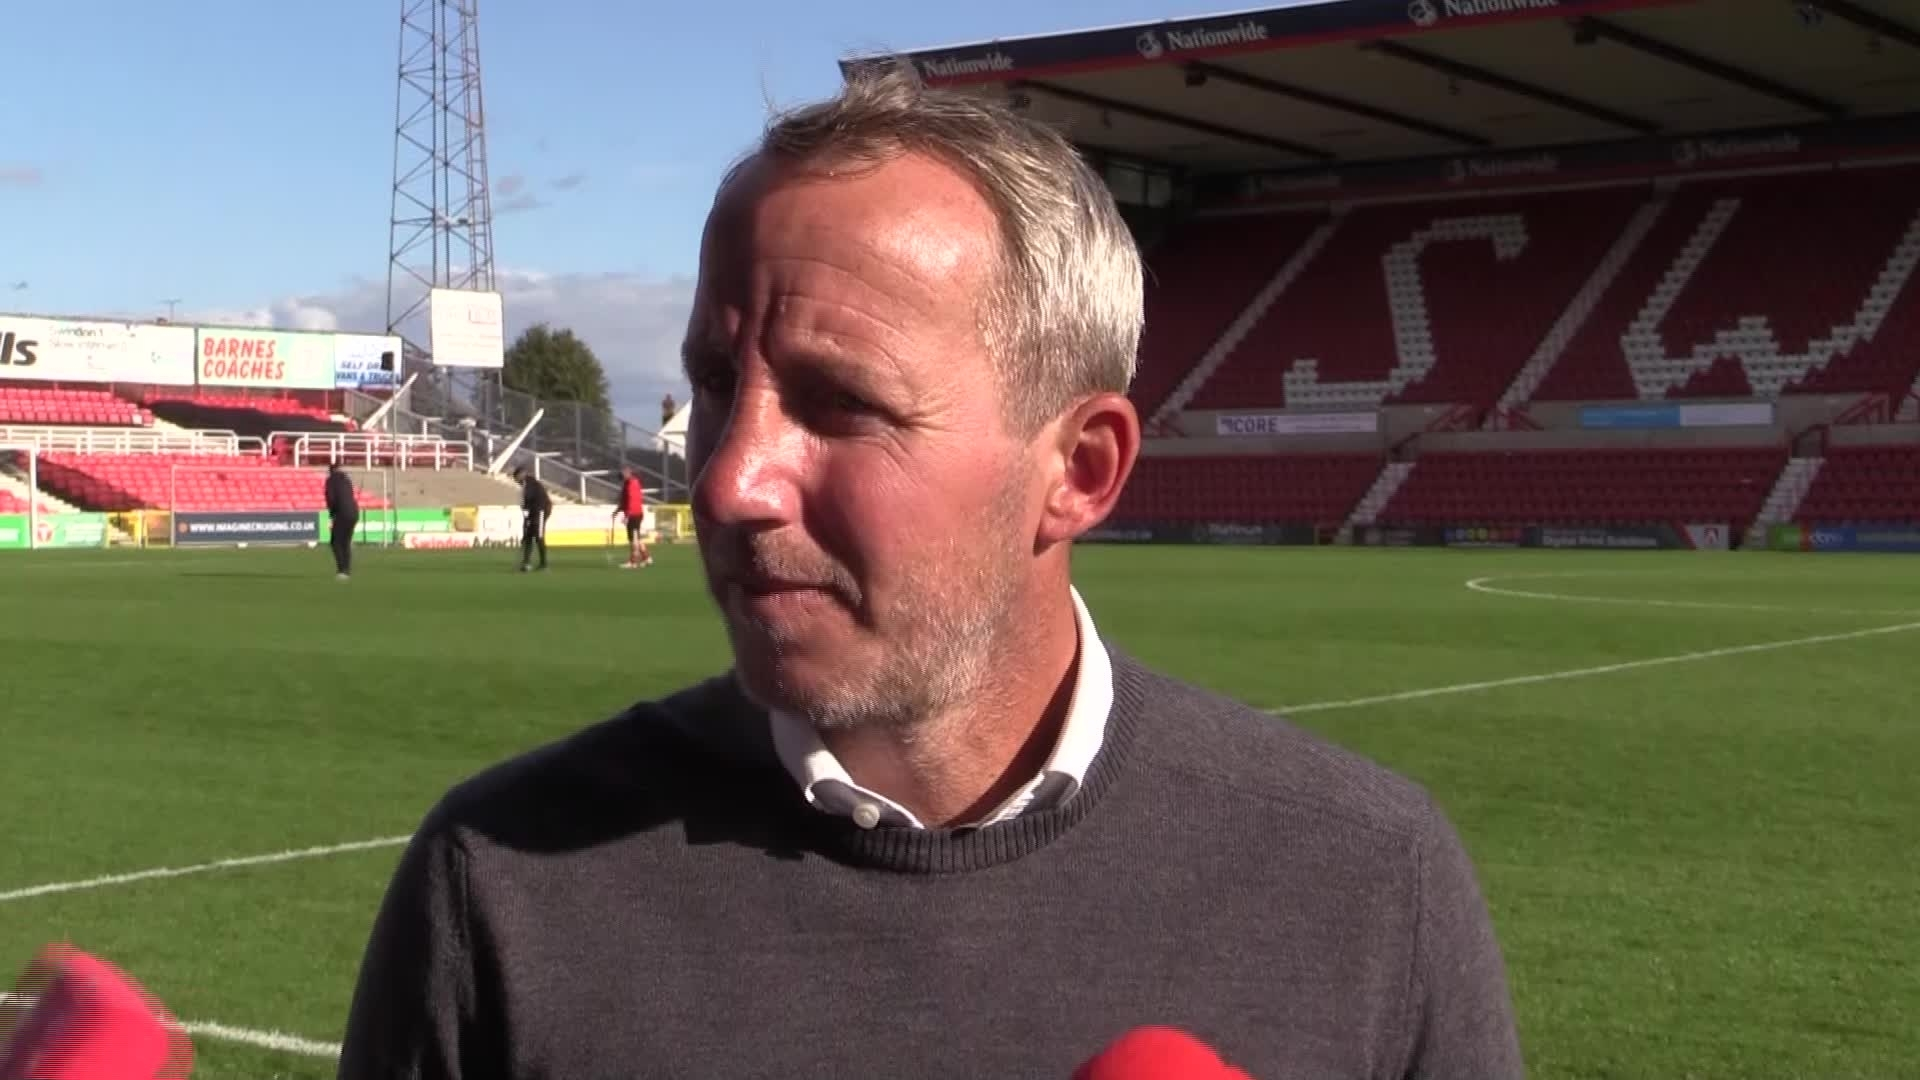 Lee Bowyer post-Swindon Town press conference (September 2020)